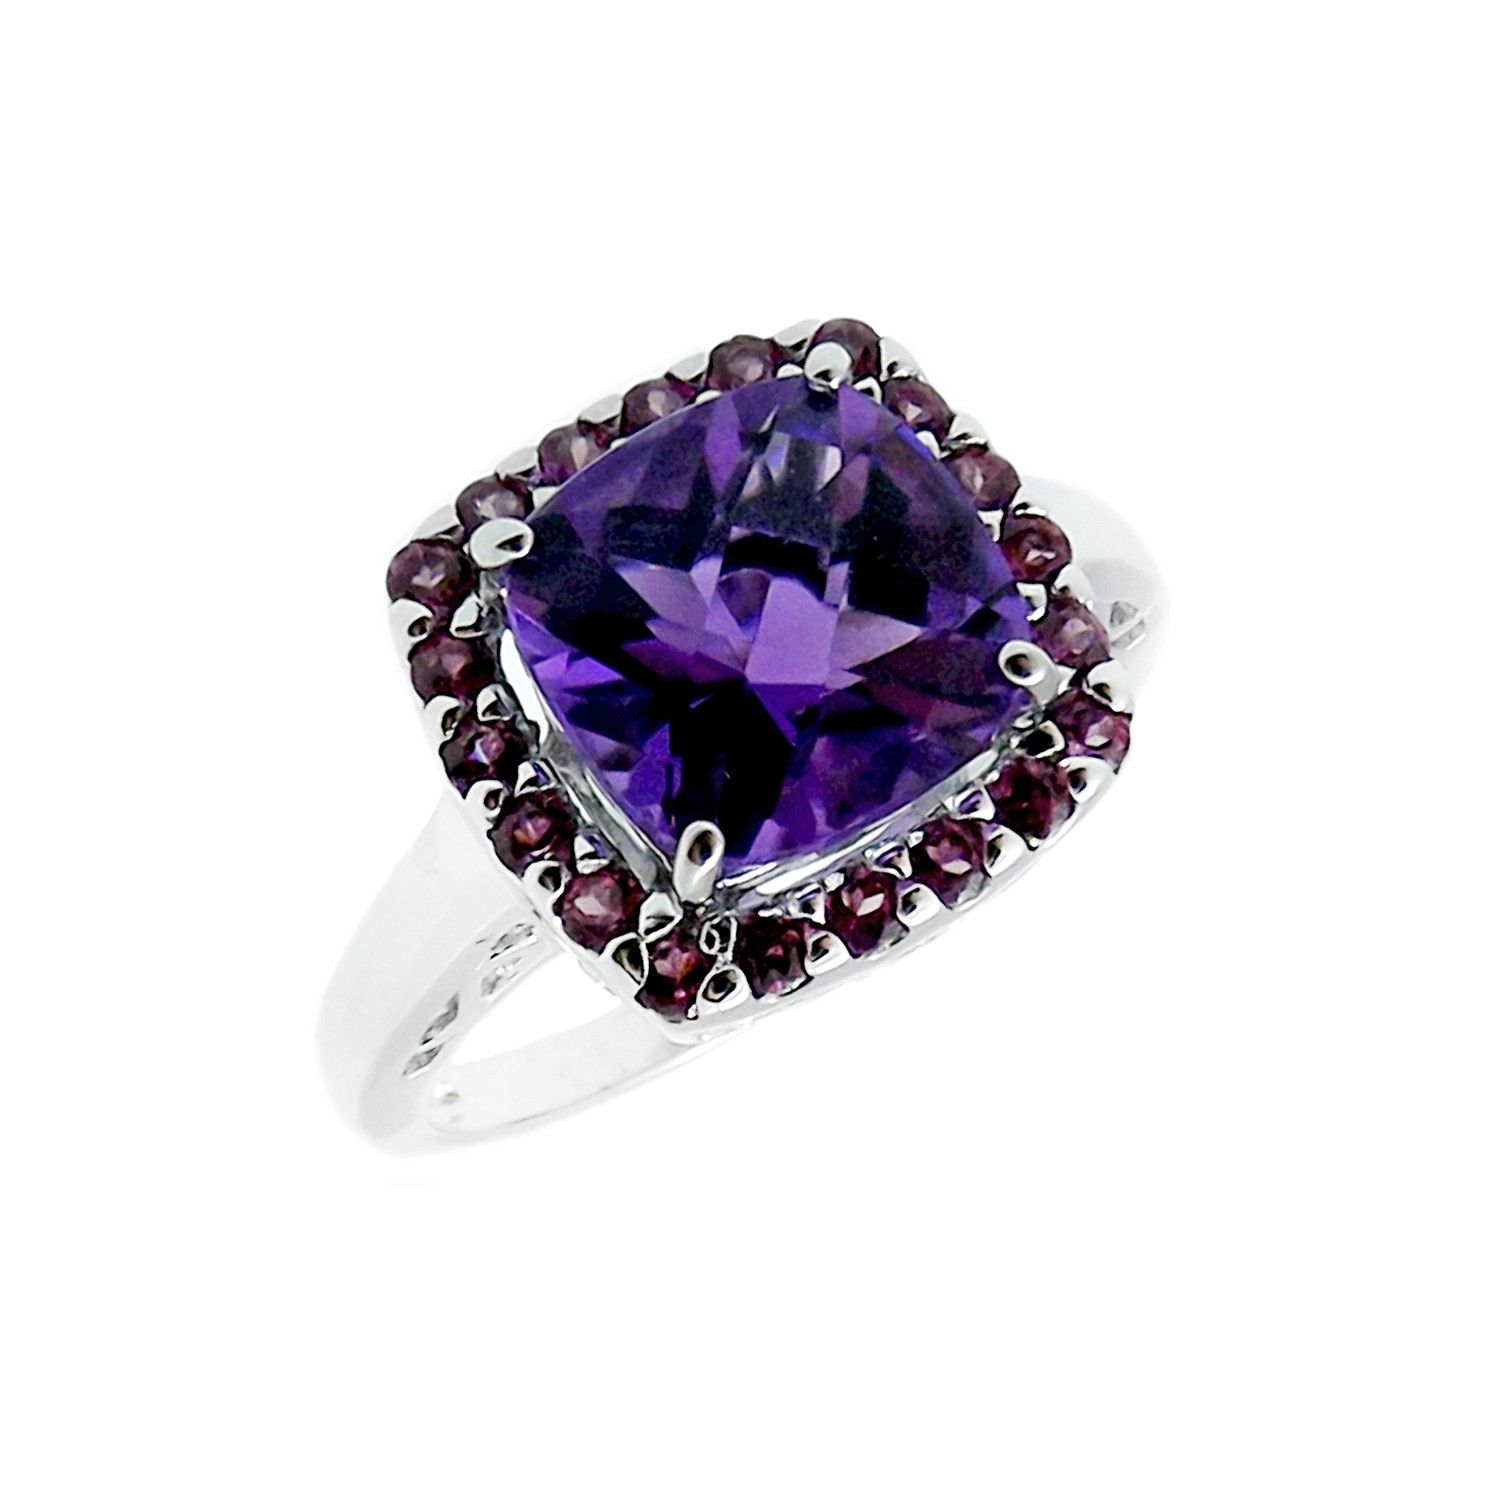 guide purple cut gem gemstone intricate buying color society international article amethyst igs